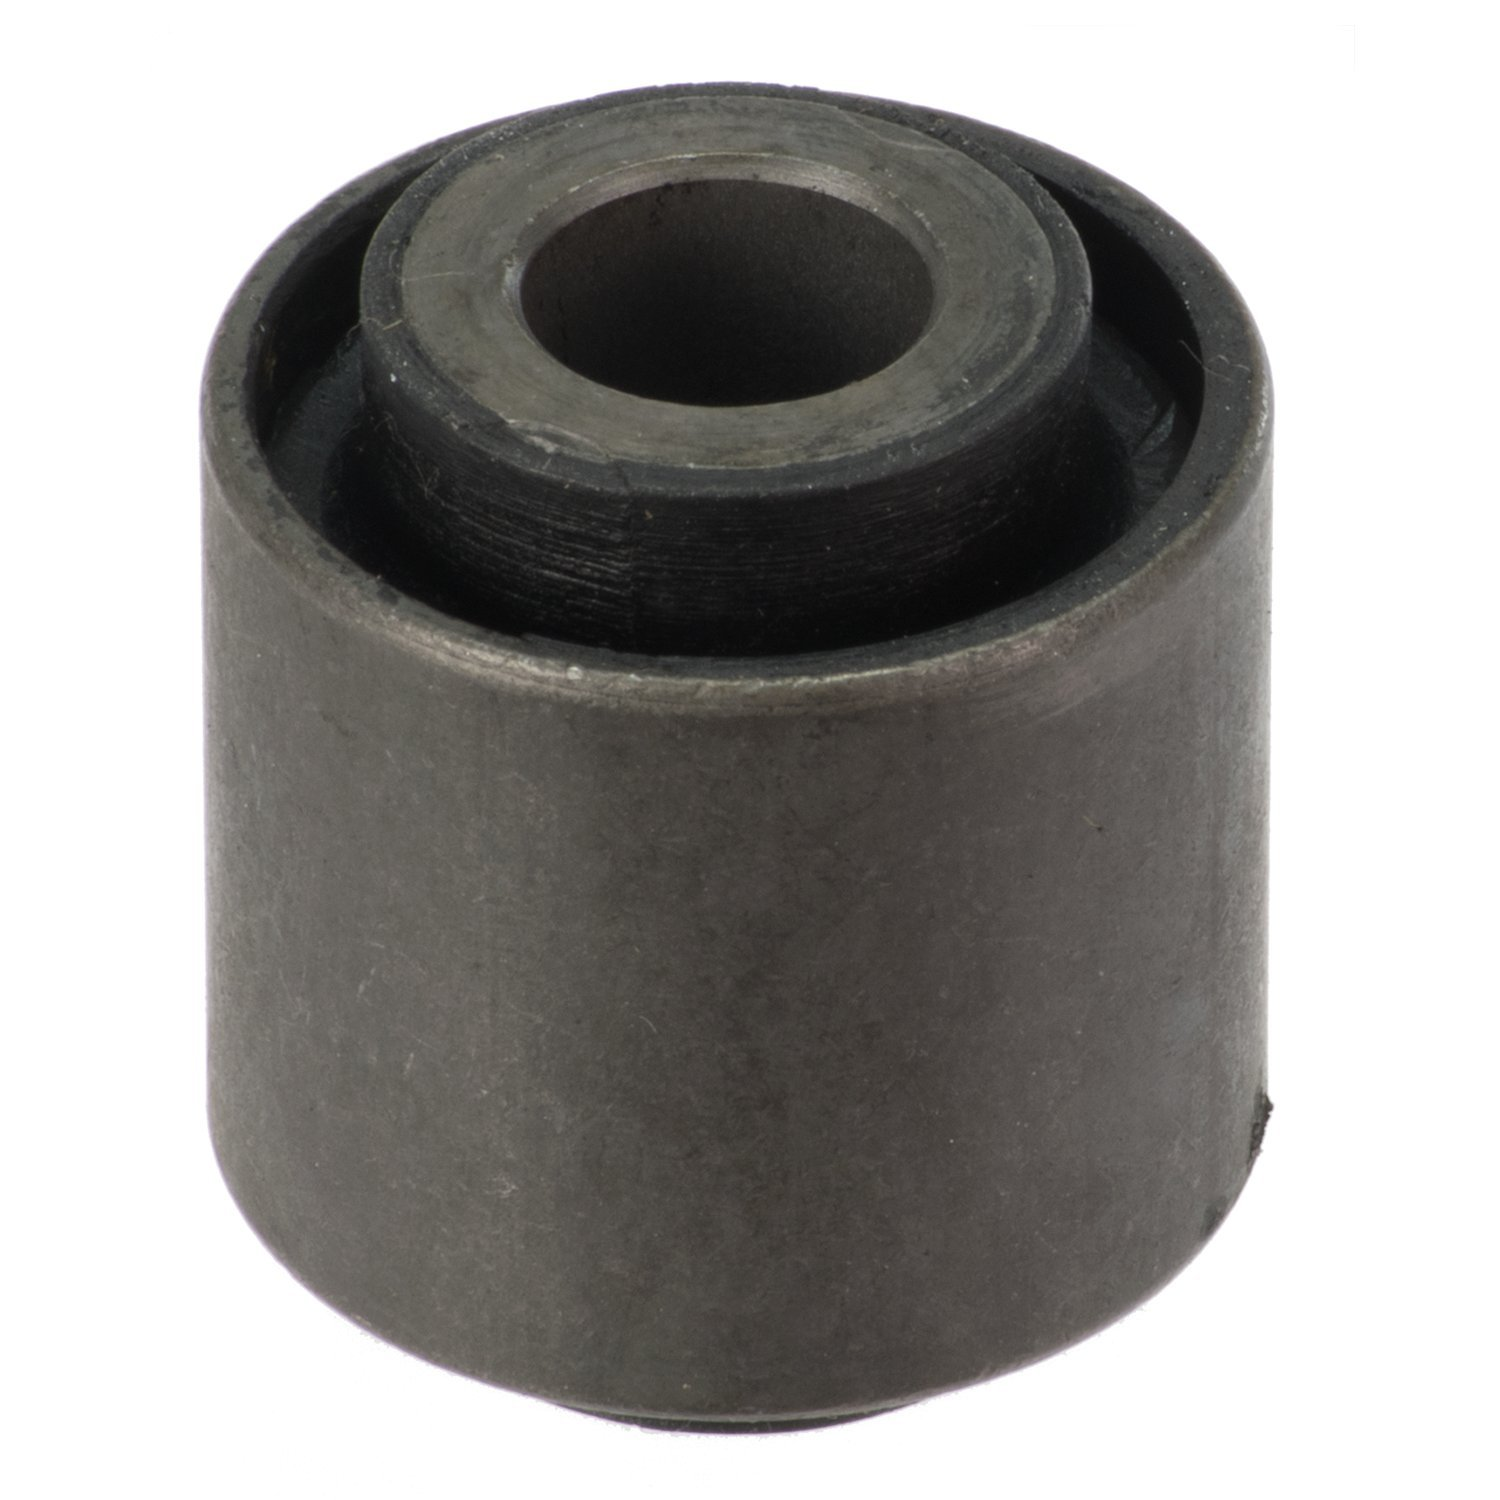 Delphi TD1249W Suspension Trailing Arm Bushing